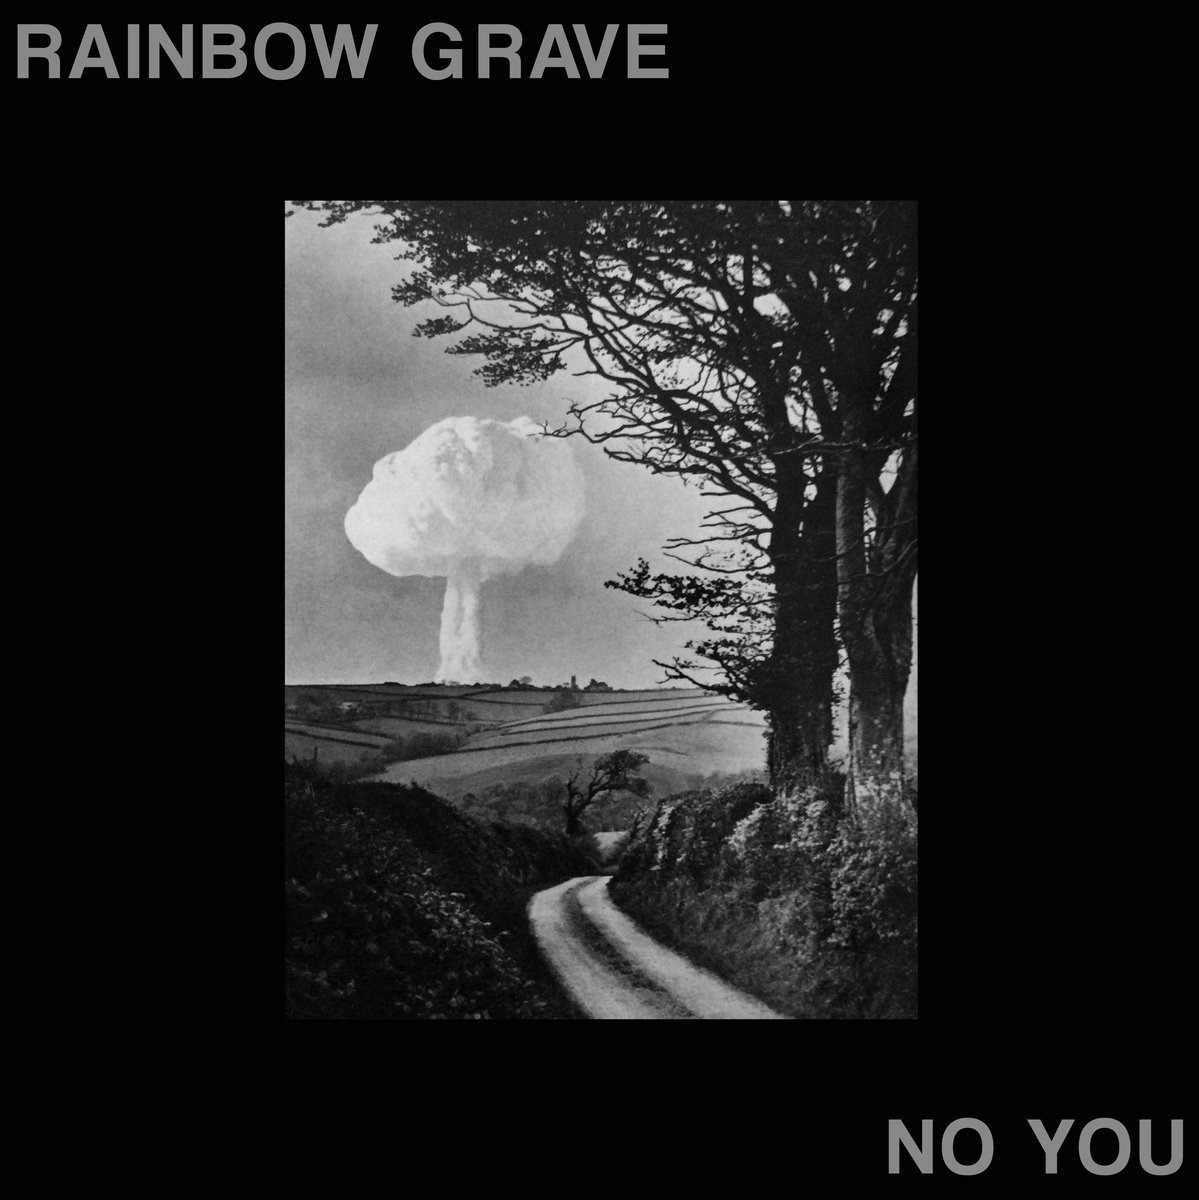 """""""No You"""" by Rainbow Grave - Doom, punk, psych, sludge, negativity, Napalm Death - ok, let's be honest, you had me at doom. But, those are just a few maggots sunken into the corpse that Rainbow Graves has to offer on their debut full-length, No You. You talking to me? No, YOU! Me? Yeah! SHIT. Well, here in the crypt we are always on a rabid search and destroy mission for those providing soundtrack to blood-drenched iron pumping and solemn vampiric mediative therapy sessions, and there is none other candidate this time around than Rainbow Grave's No You. Constructed upon the graves from founding members of the aforementioned grind lords Napalm Death; as well as, but not limited to, Doom, Scorn, and the mighty; Sore Throat. Although thee be warned, I would be weary to deem these boisterous Birmingham-based bastards that of a """"supergroup"""" , because there is hardly anything """"super"""" about them at all. Rather, their strength & powers align with that of the anti-super; the recess, the void, the down, the villain. Anti-hero depressive punk that's certainly not afraid of a guitar tone found only thriving in the oozing sewers of London, spewing vile lyrics with a vocal style not too far off from what you could imagine Jack The Ripper would channel; speaking of the streets of London. And spewing. And ripping. And darkness. Anyway, the utterly filthy tone and themes found within this record are repeatedly inflicting physical and psychological damage upon the listener and then delivered again packaged in a murkier guises, as the psychedelic loop aspect and primal rhythm patterns always make a triumphant and vomit-inducing return… and seem to not let up until the final droning feedback subsides on the concluding track. Sounds like a delightful listening experience, no?TEN MILLION TONS OF SHIT. Yes, the subtle opening track more than sets the tone - twice - and will leave you writhing in the loathsome doom and absolute hatred painted so vividly on this track. """"I hate your car, I ha"""